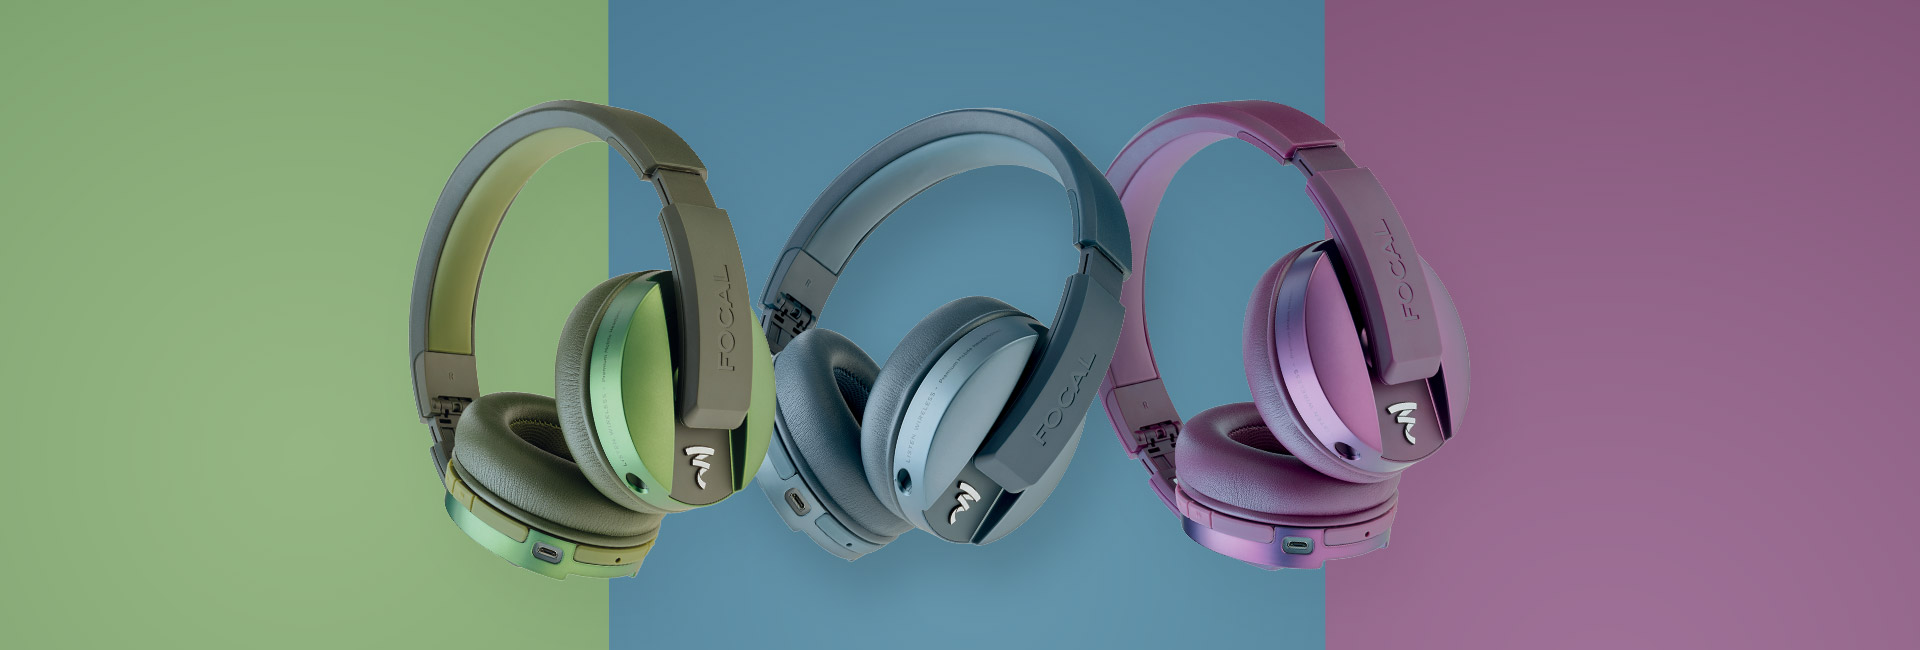 Focal Listen Chic Colors